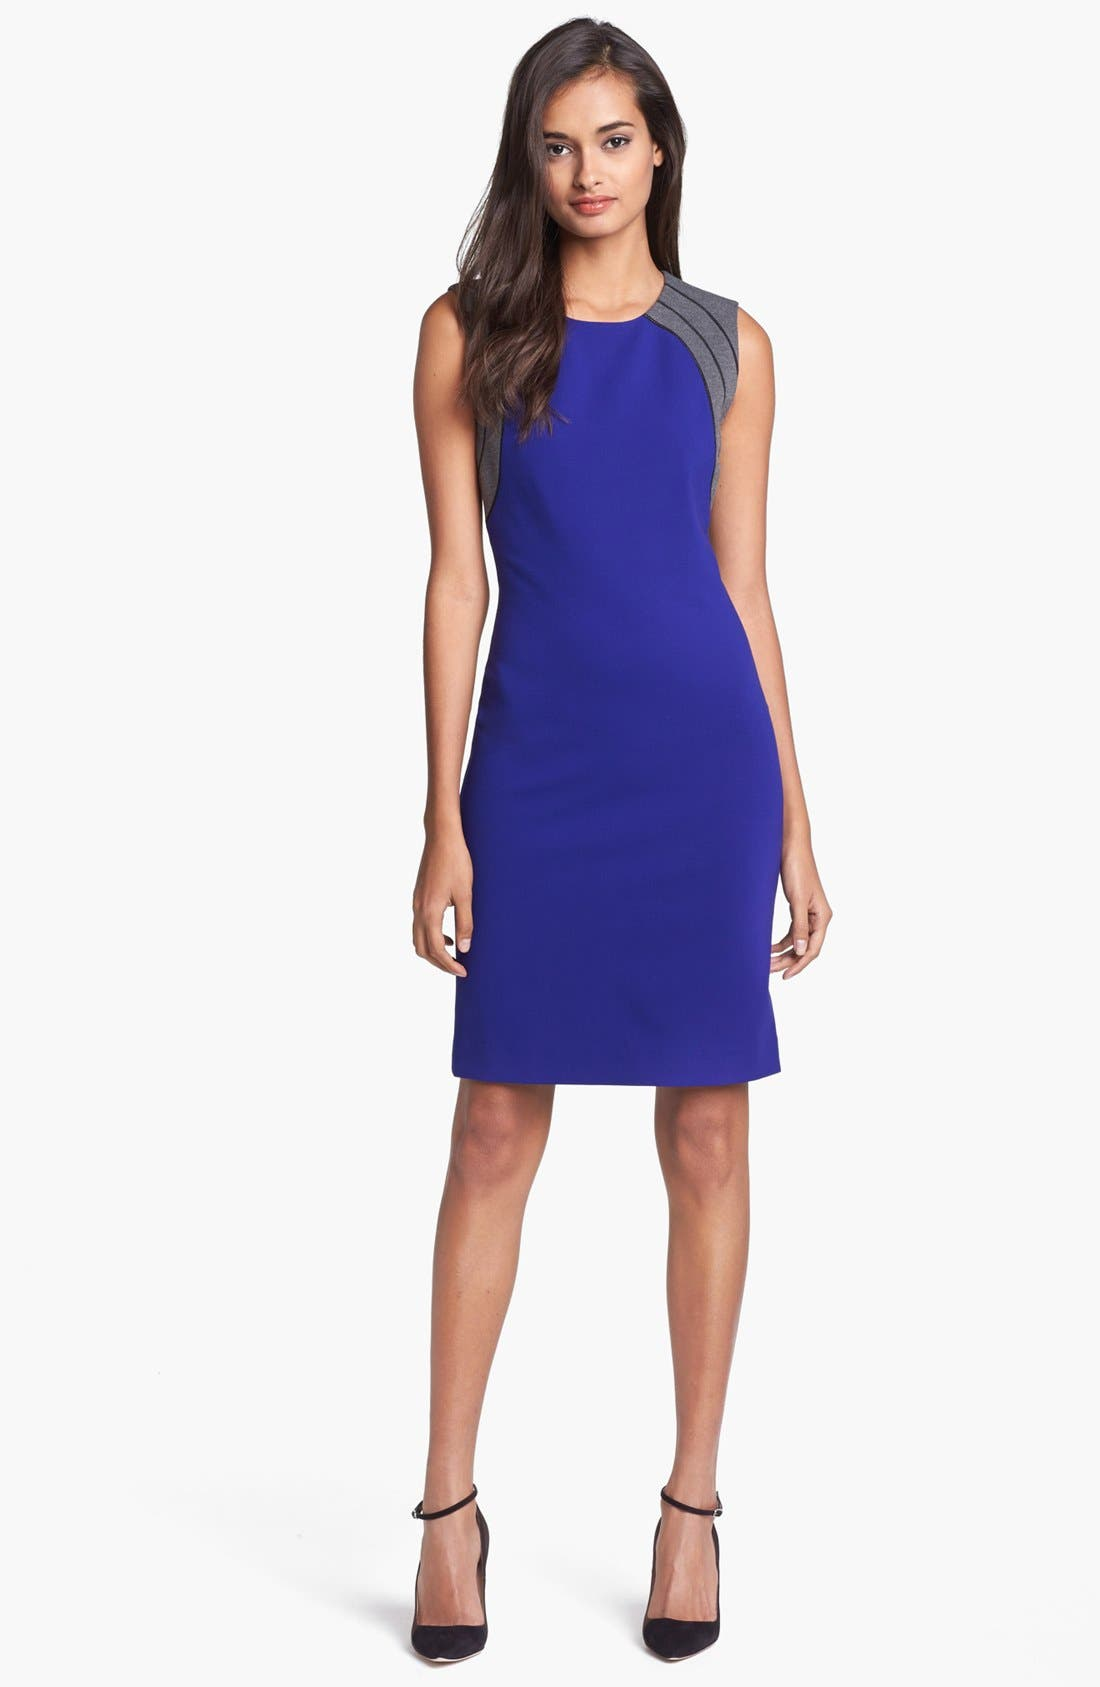 Alternate Image 1 Selected - Diane von Furstenberg 'Hallie' Knit Sheath Dress